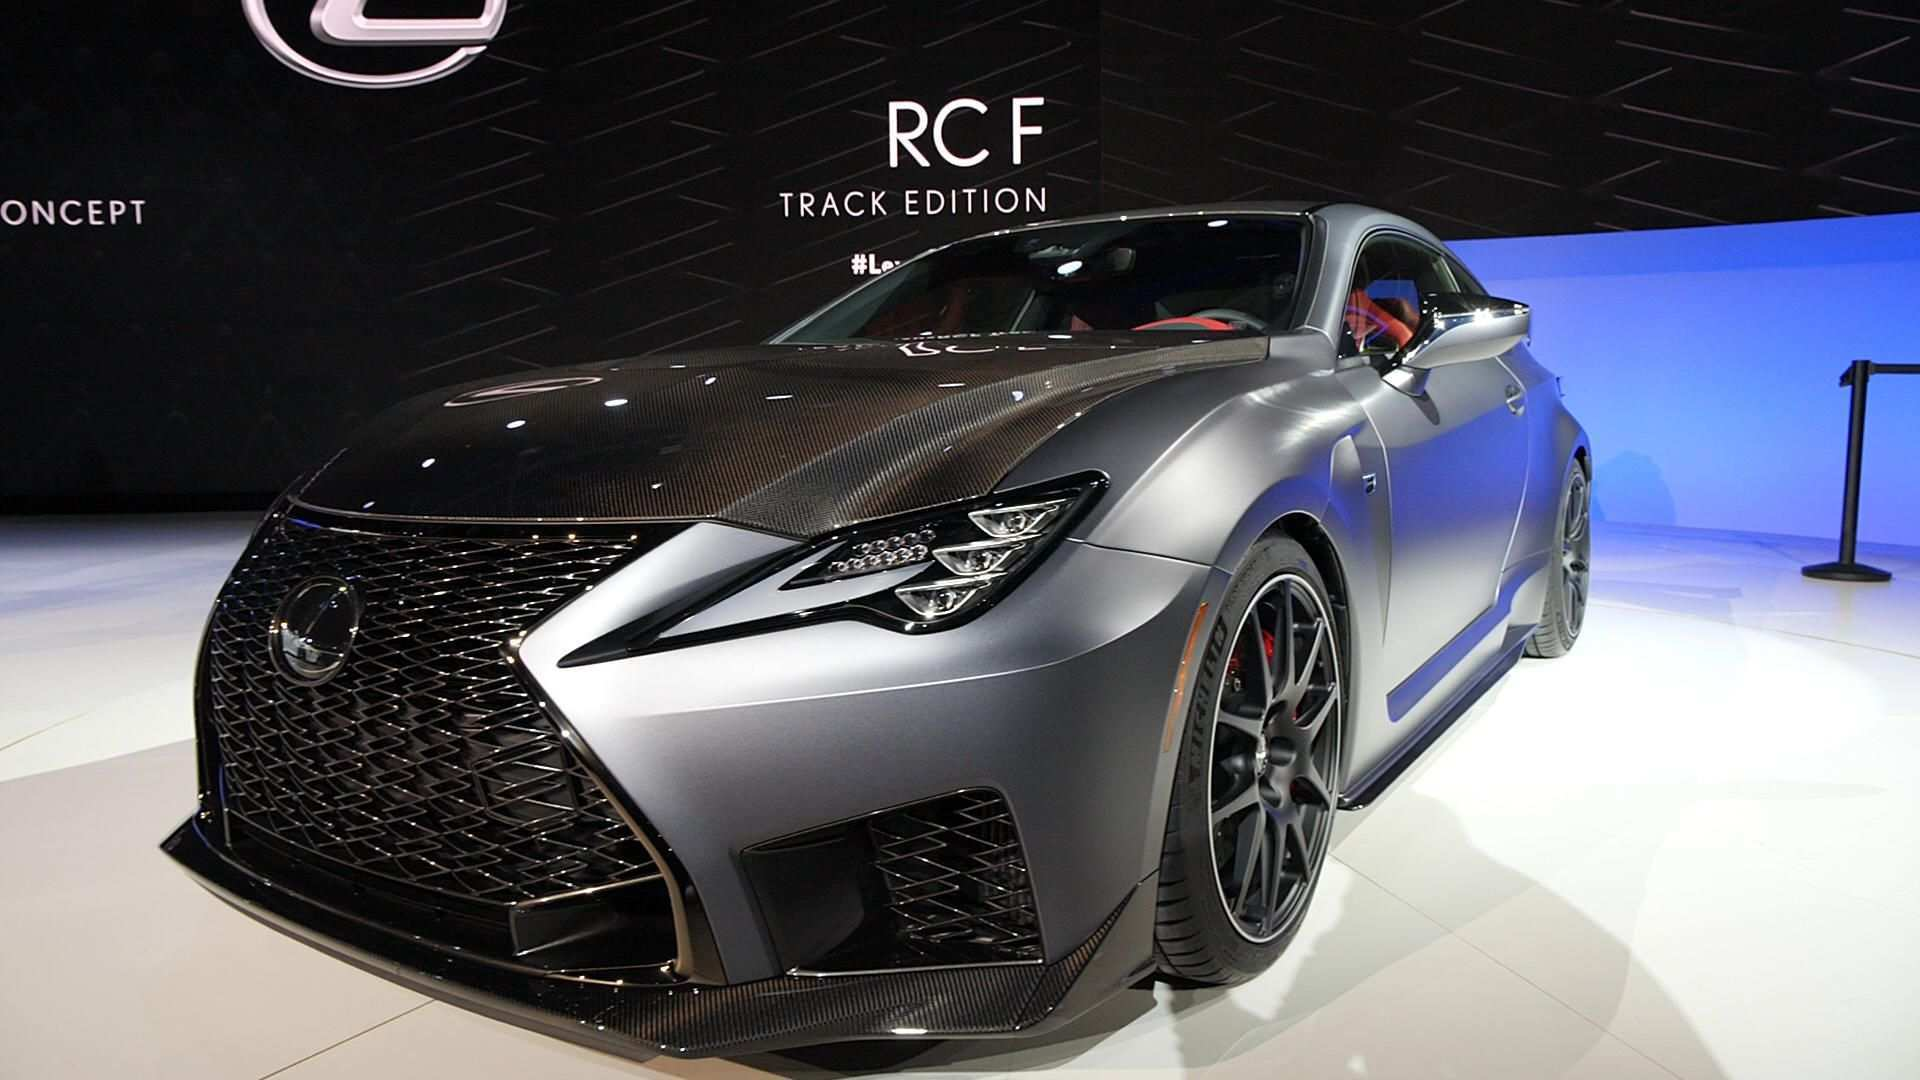 89 Gallery of Rcf Lexus 2020 Style with Rcf Lexus 2020